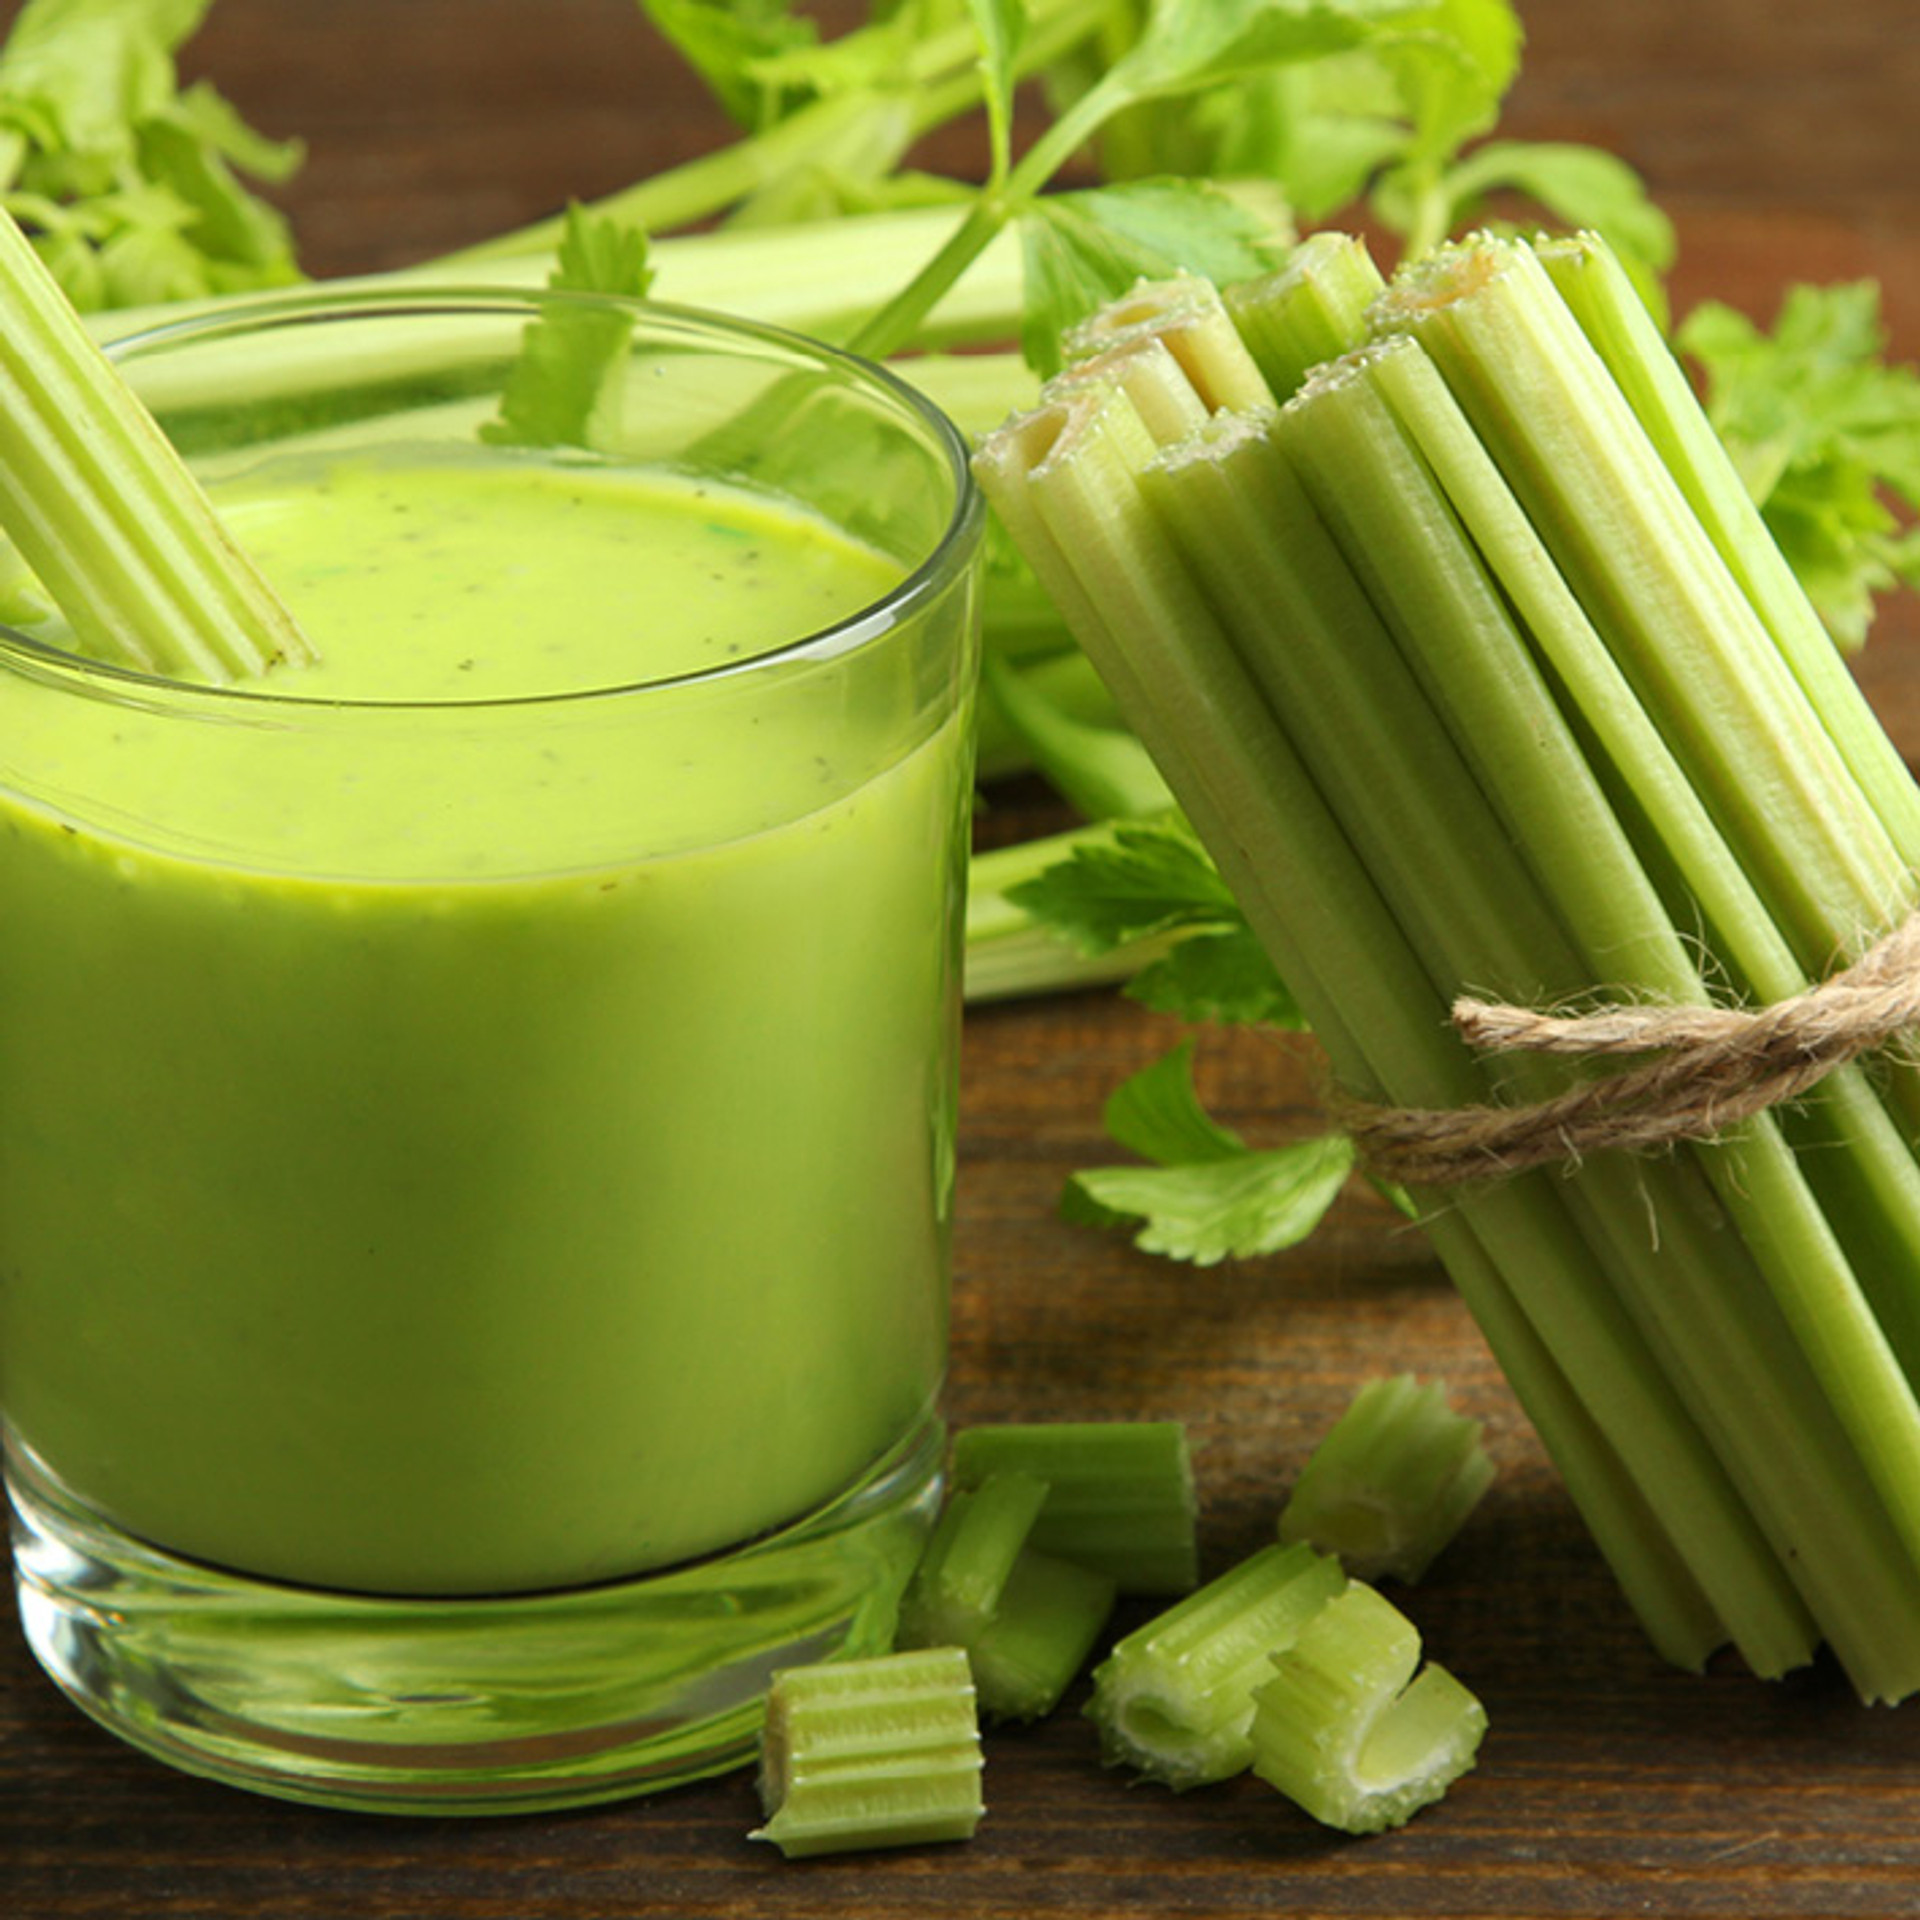 Celery Juice: Cure-all or just another green drink?